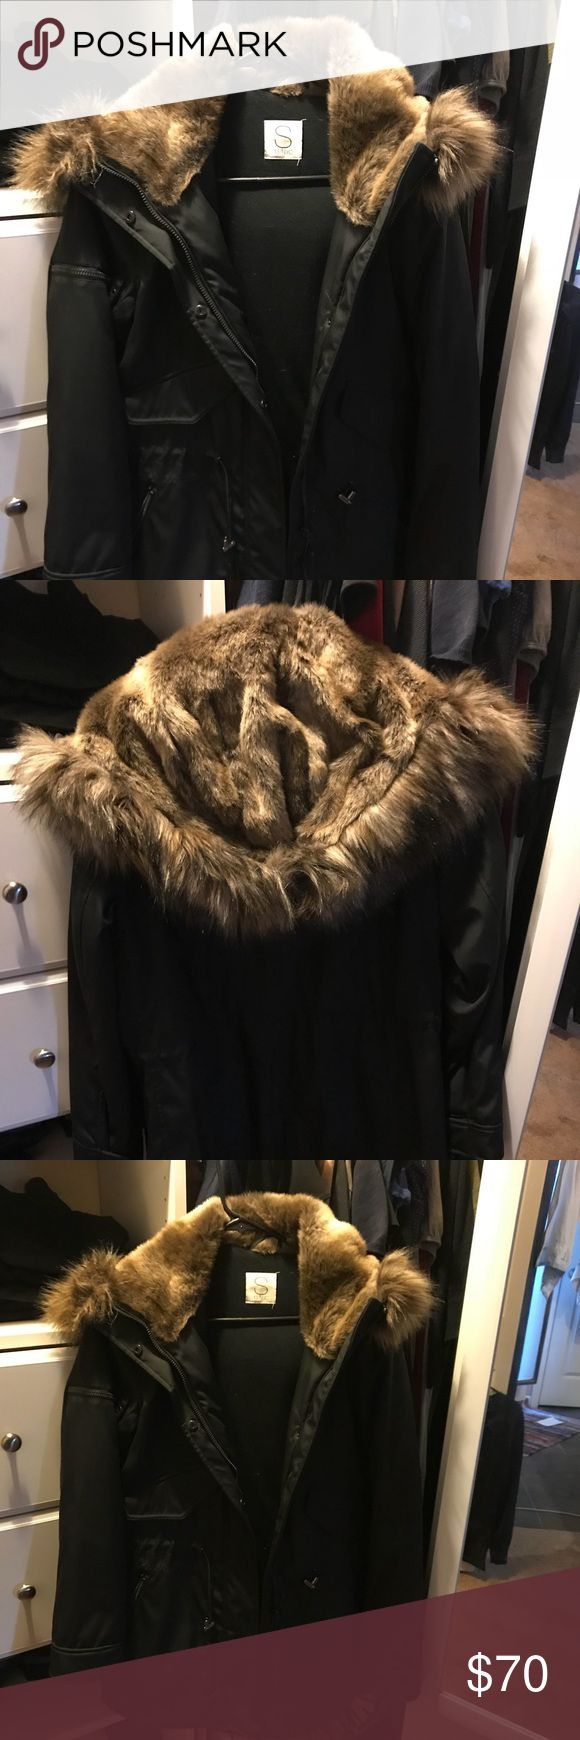 Victoria's Secret NYC S/13 Faux Fur Jacket Victoria's Secret NYC S/13 Faux Fur Jacket.  Only worn once (it doesn't get cold enough to wear where I live) I bought it from the Victoria's Secret catalog but it does not say VS on it. Victoria's Secret Jackets & Coats